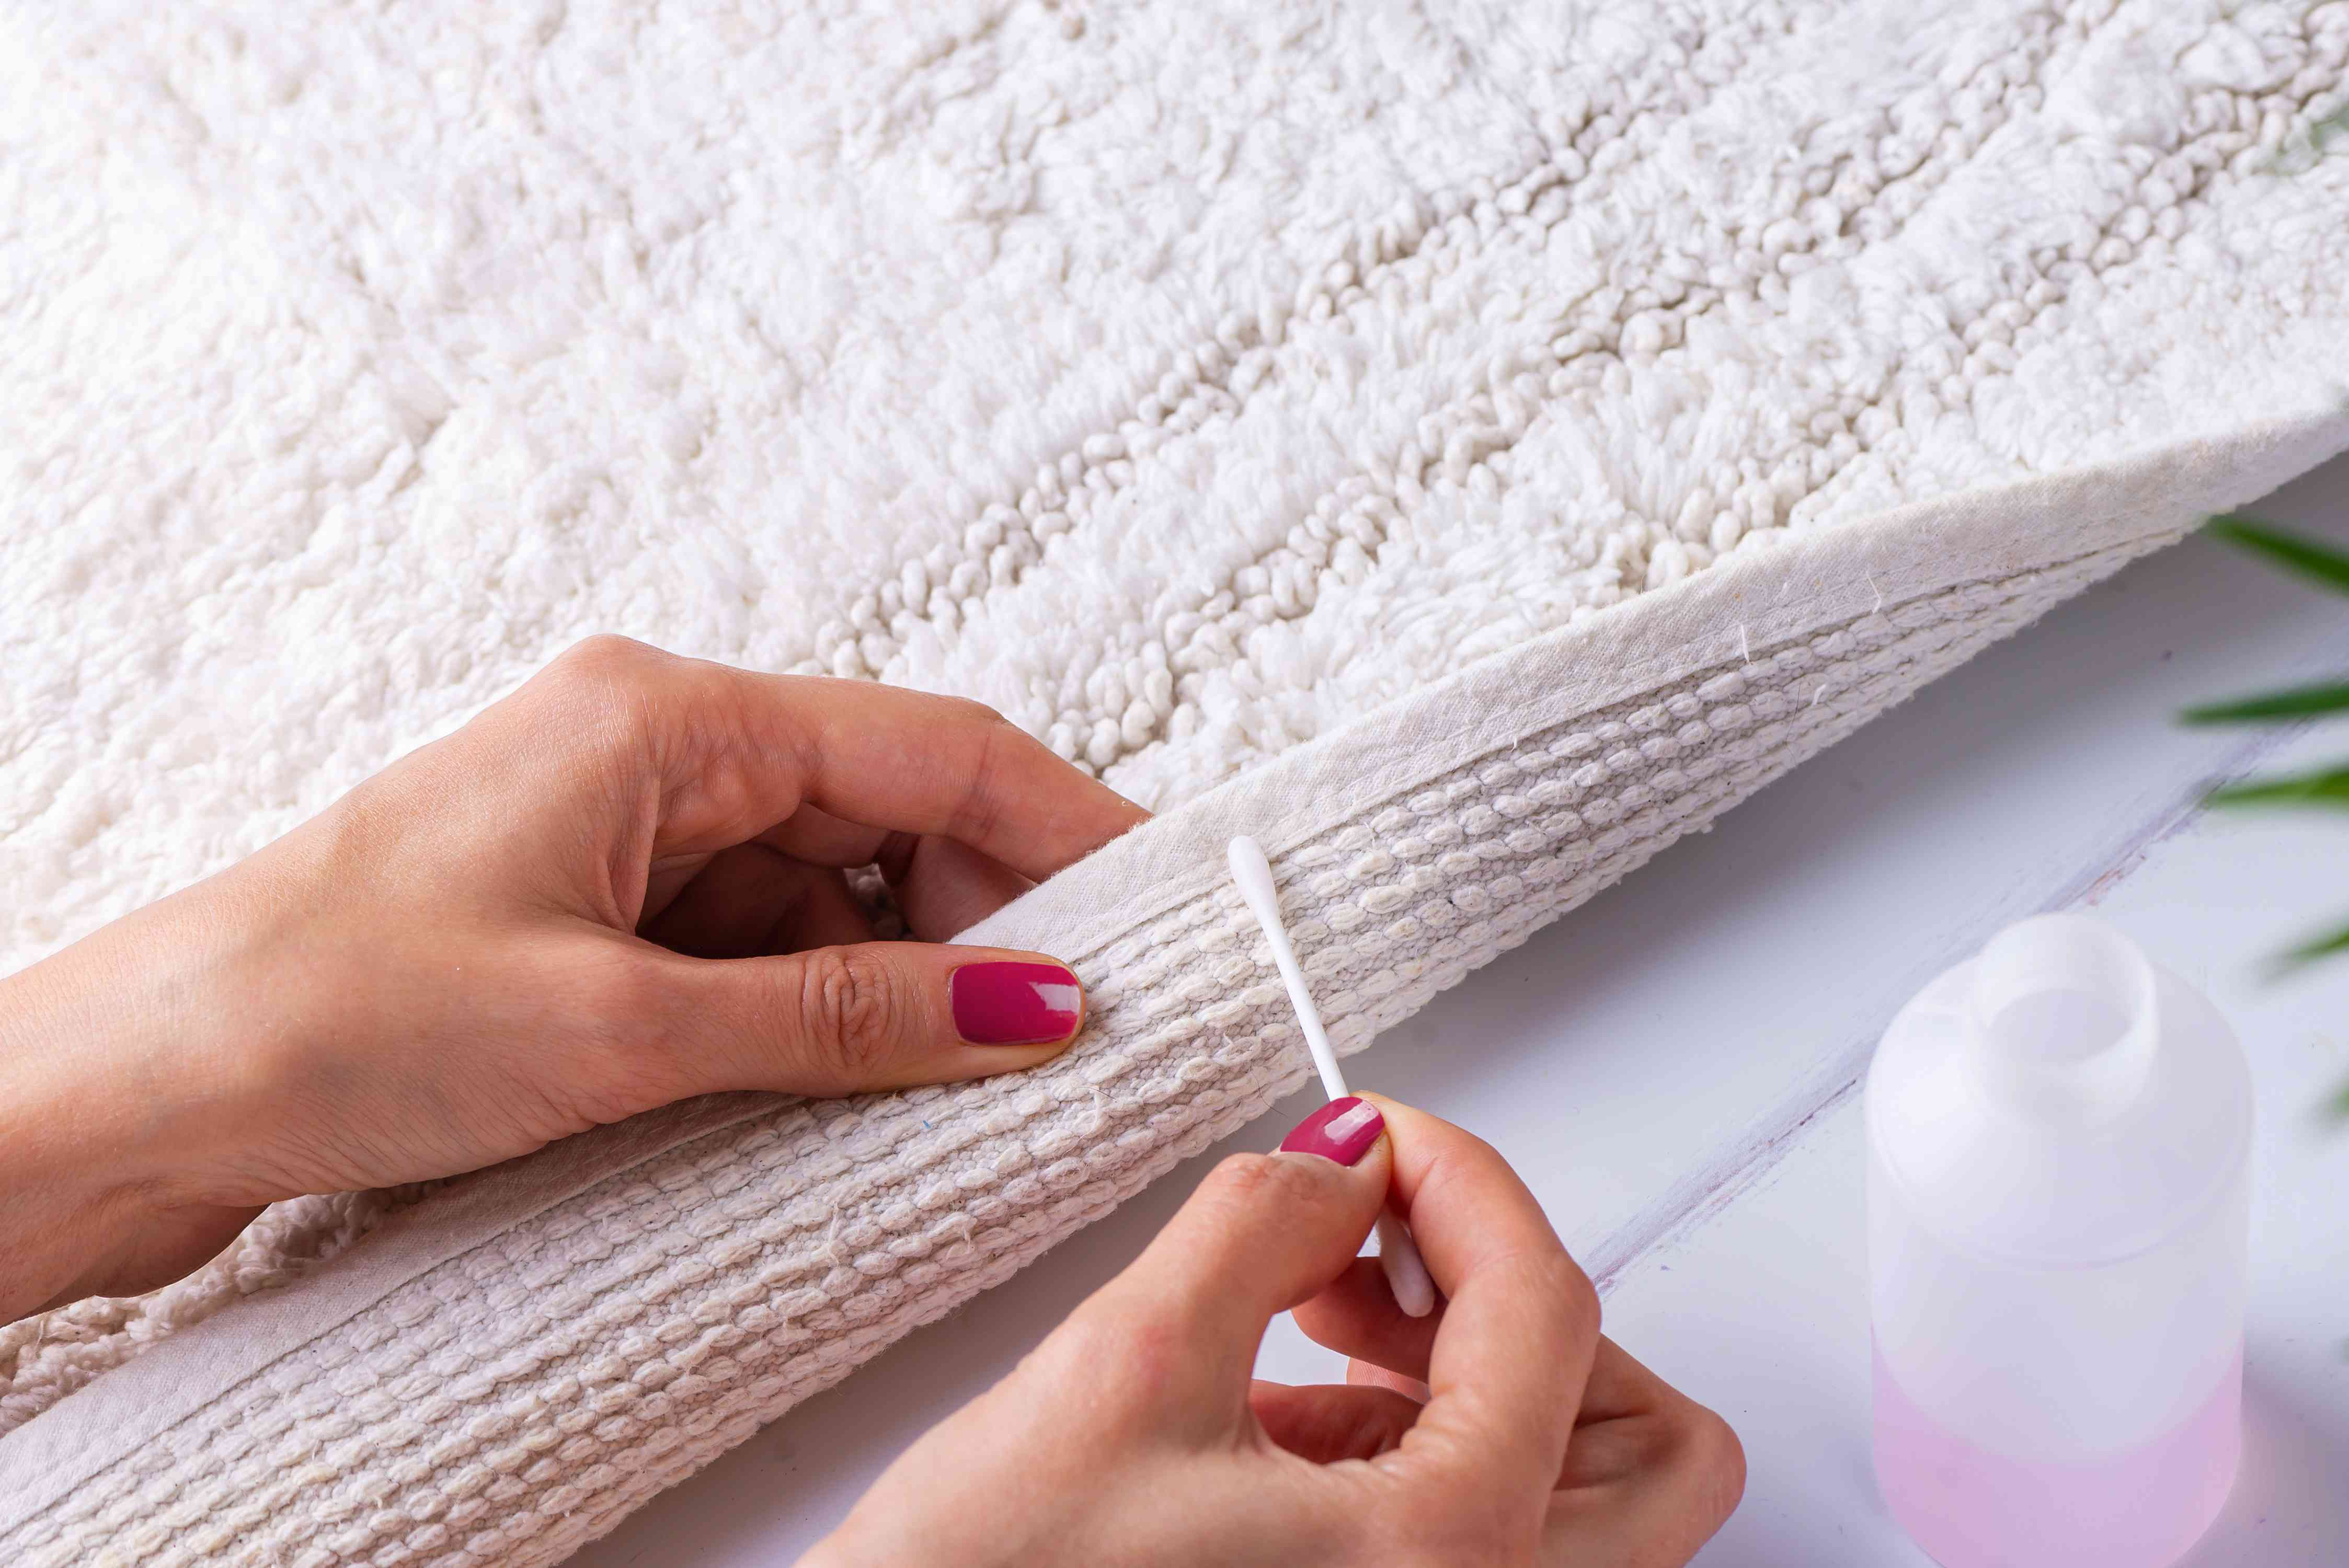 testing acetone on a hidden part of the rug